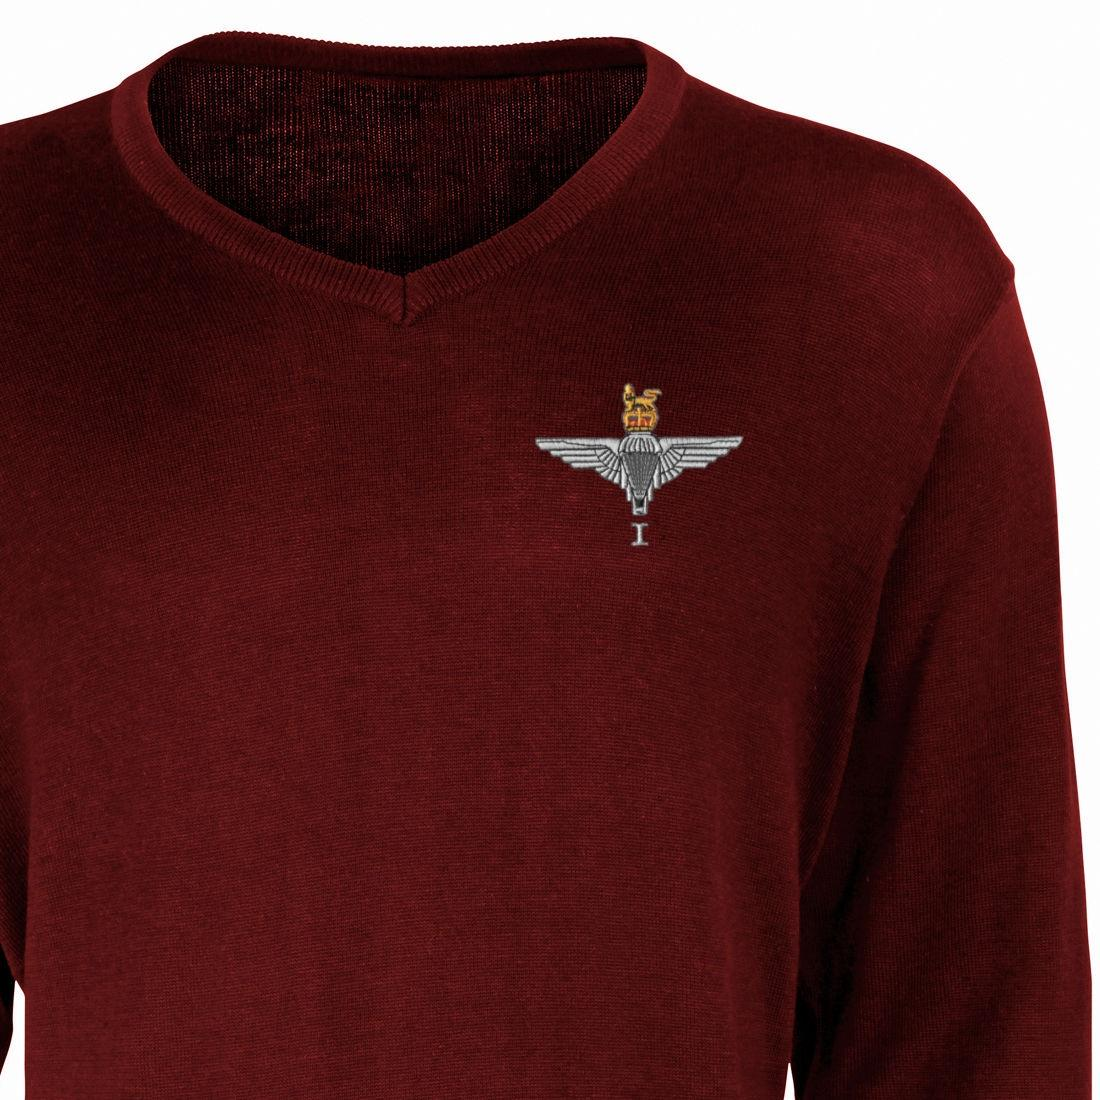 Clearance V Neck Pullover Sweater Small Maroon 1 Para Cap Basic Pull Over Badge